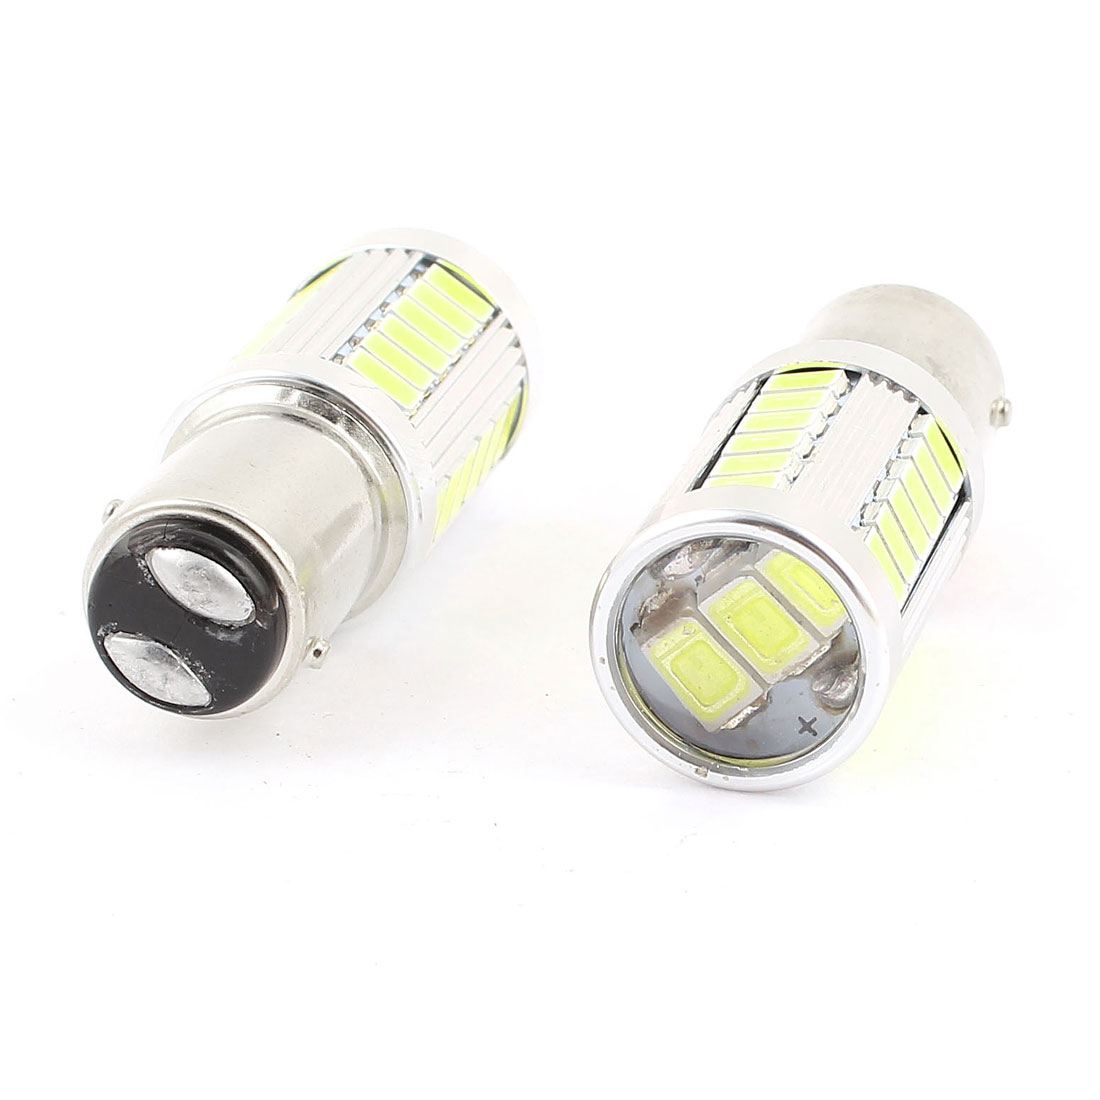 BA15S 1157 5630 SMD 33 LED Projector Lens Tail Turn Signal Light White 1073 1259 2 Pcs